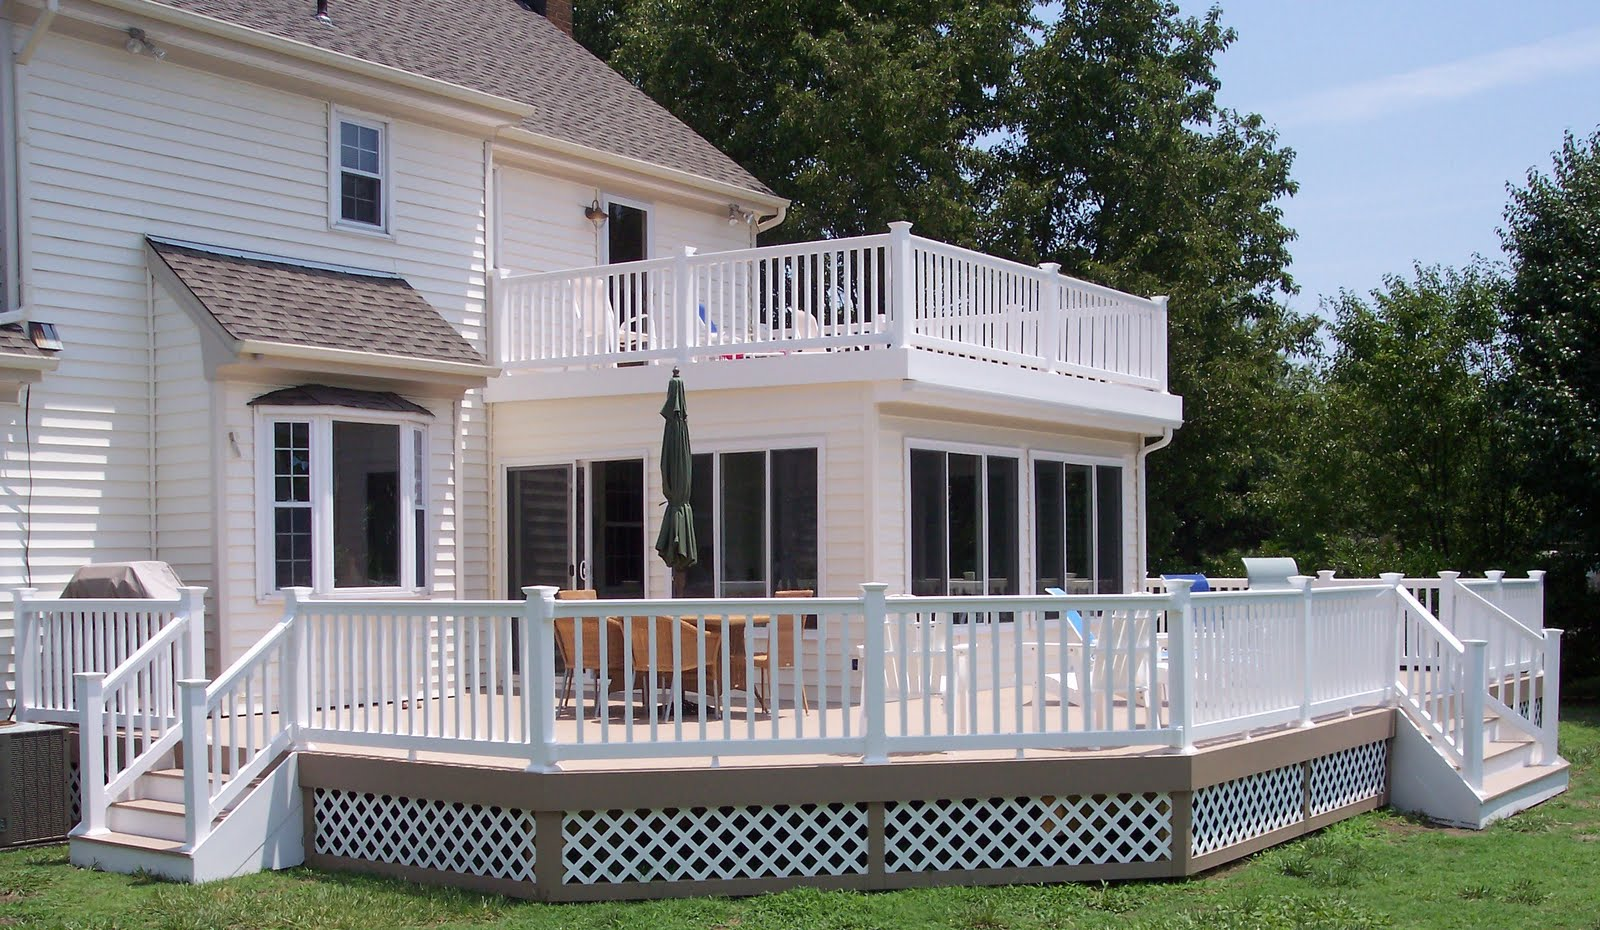 Archadeck Of Virginia Beach Just Finished A Beautiful Deck With 3 Season Room And Balcony In Pungo